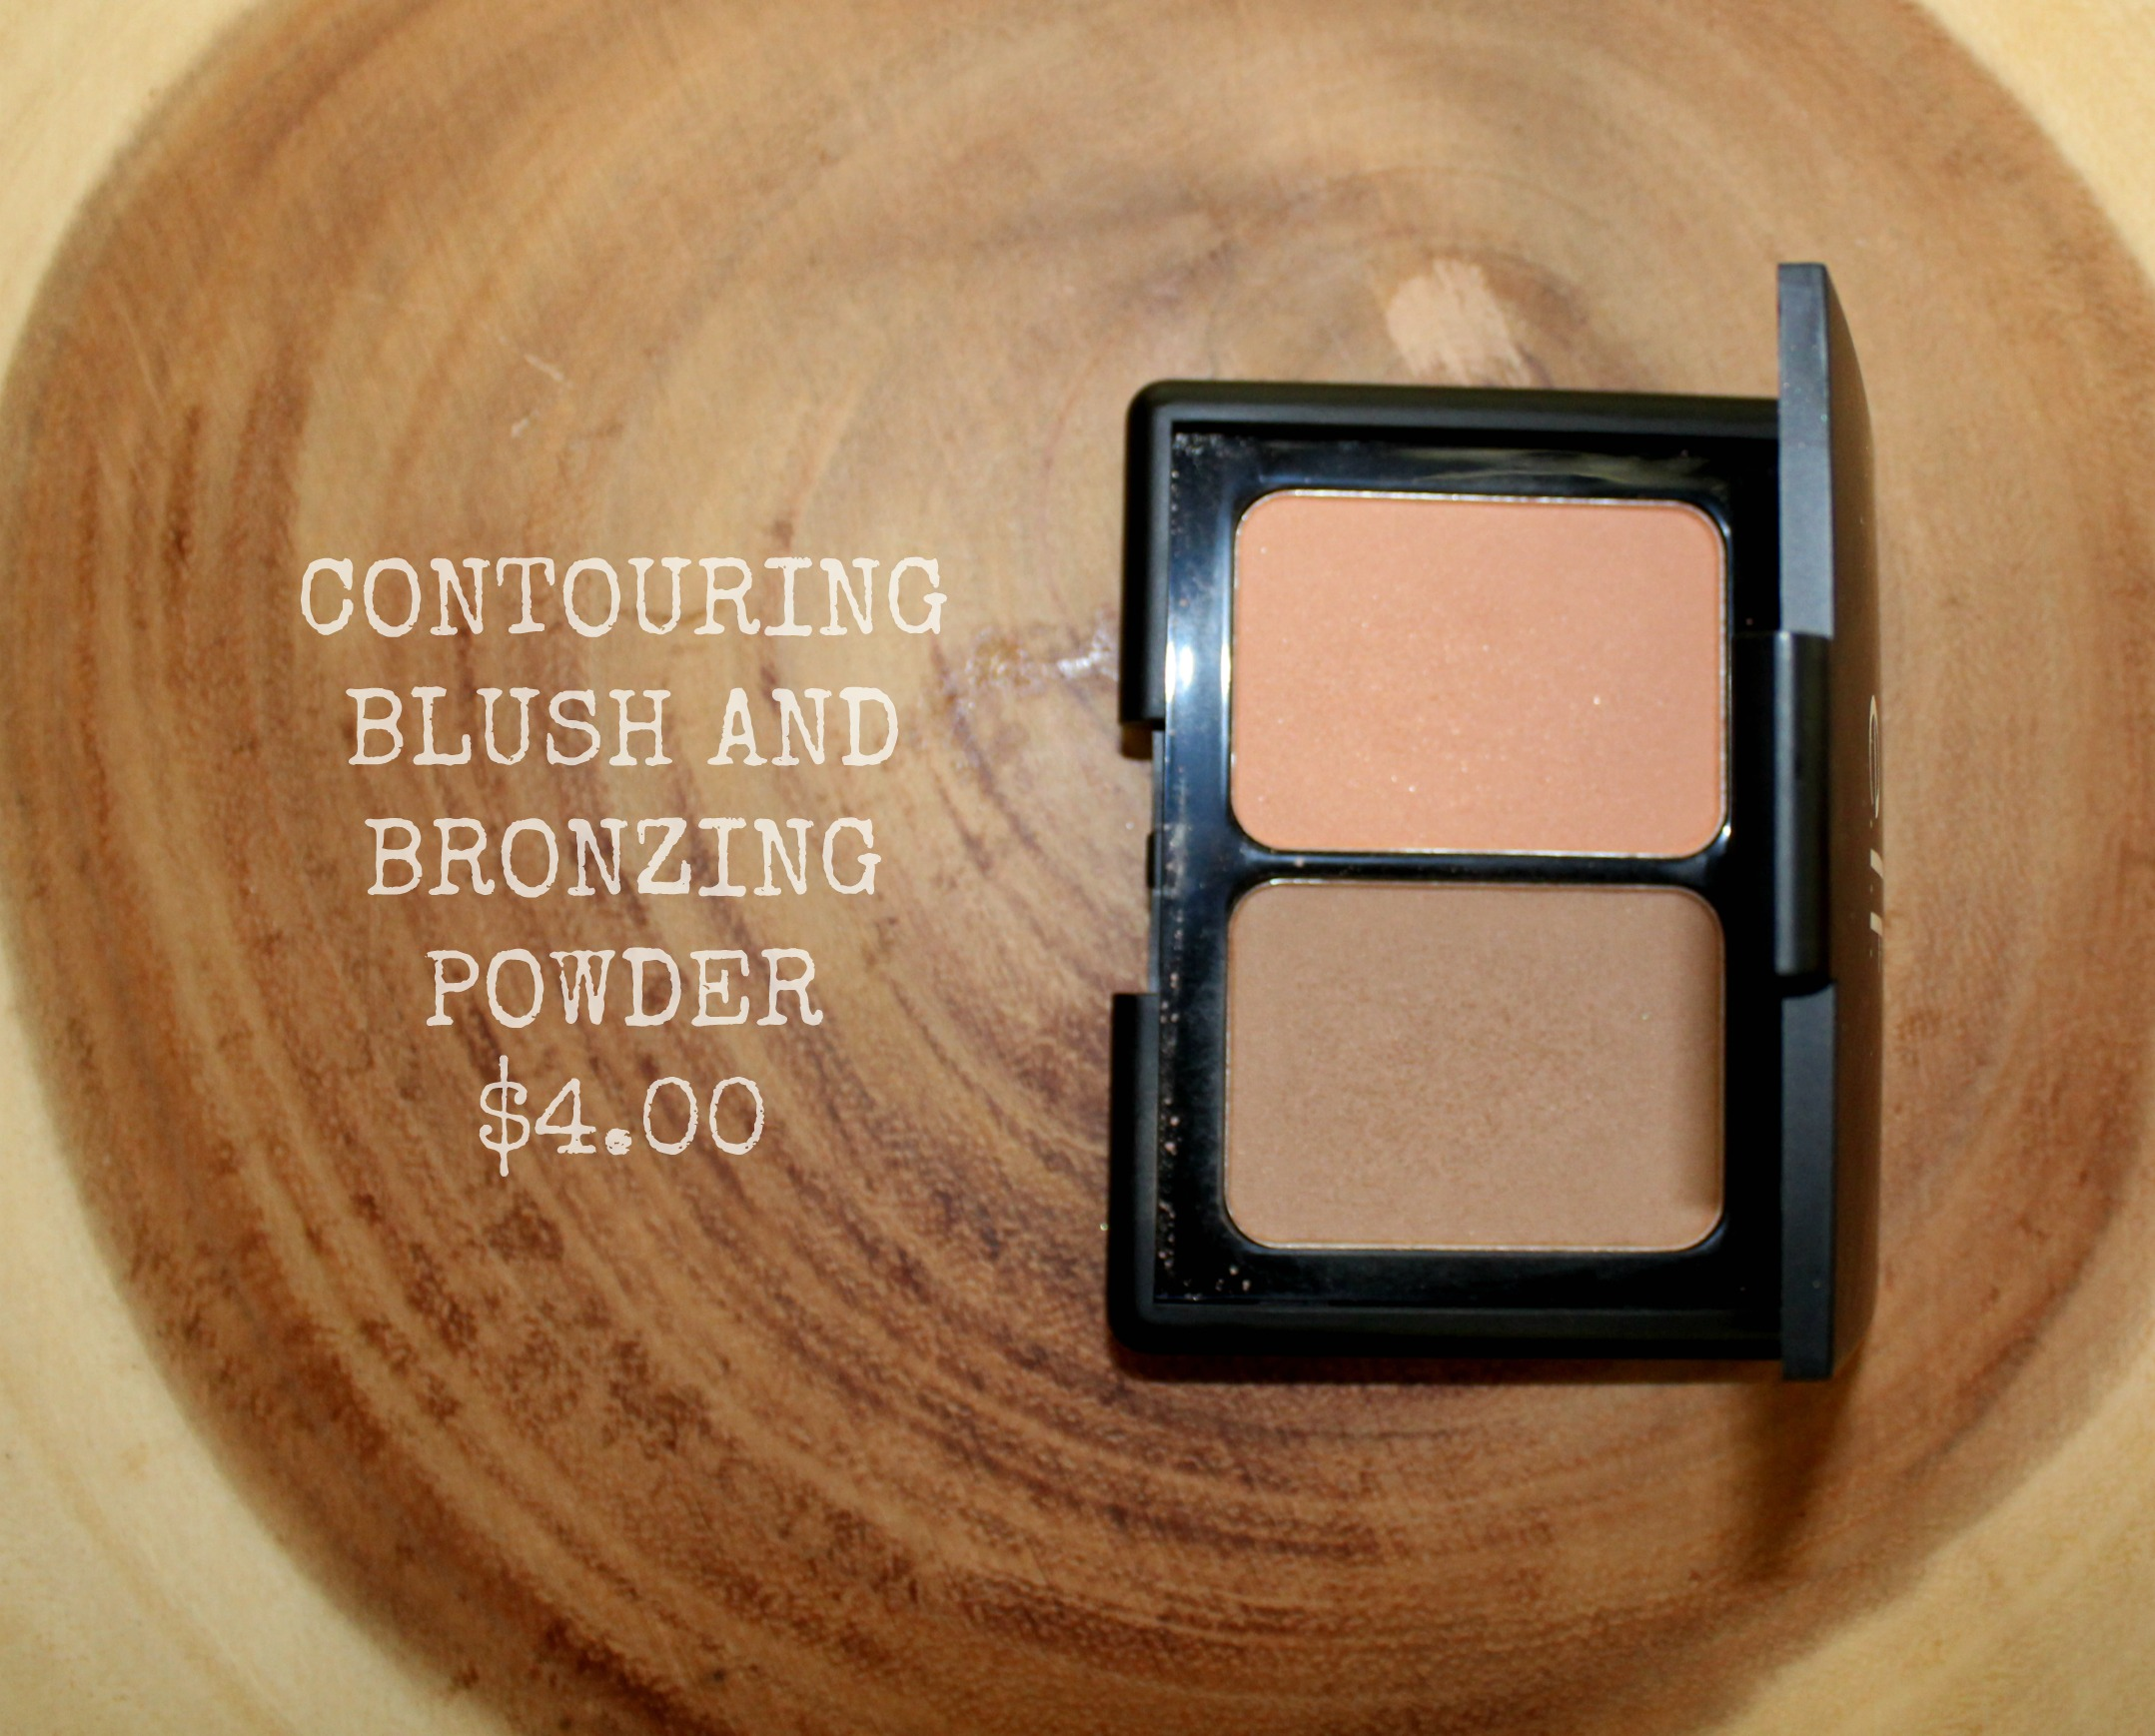 CONTOURING BLUSH AND BRONZING POWDER.jpg